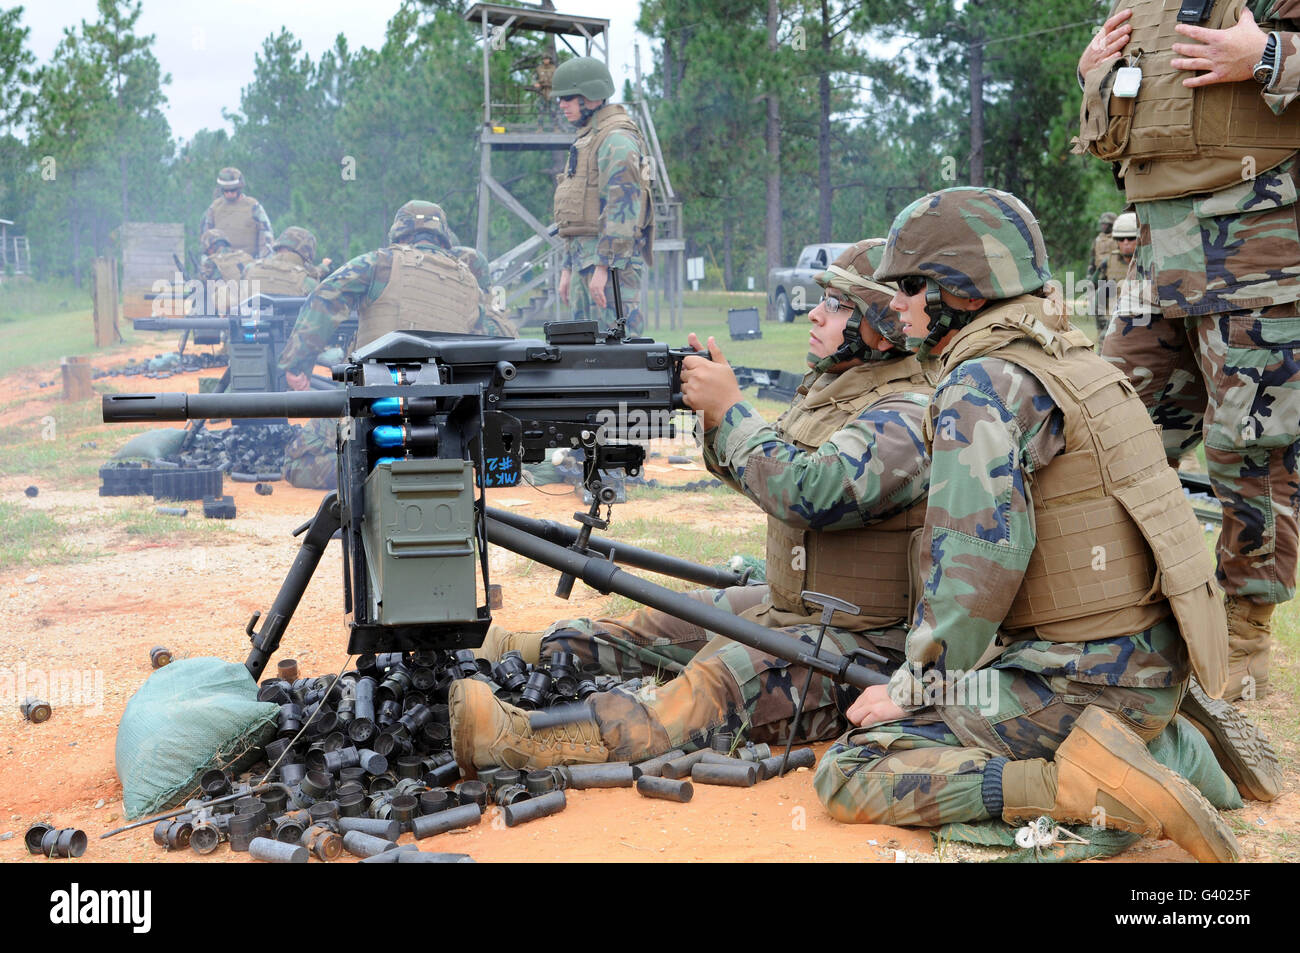 Soldiers operate a MK-19 grenade launcher. - Stock Image